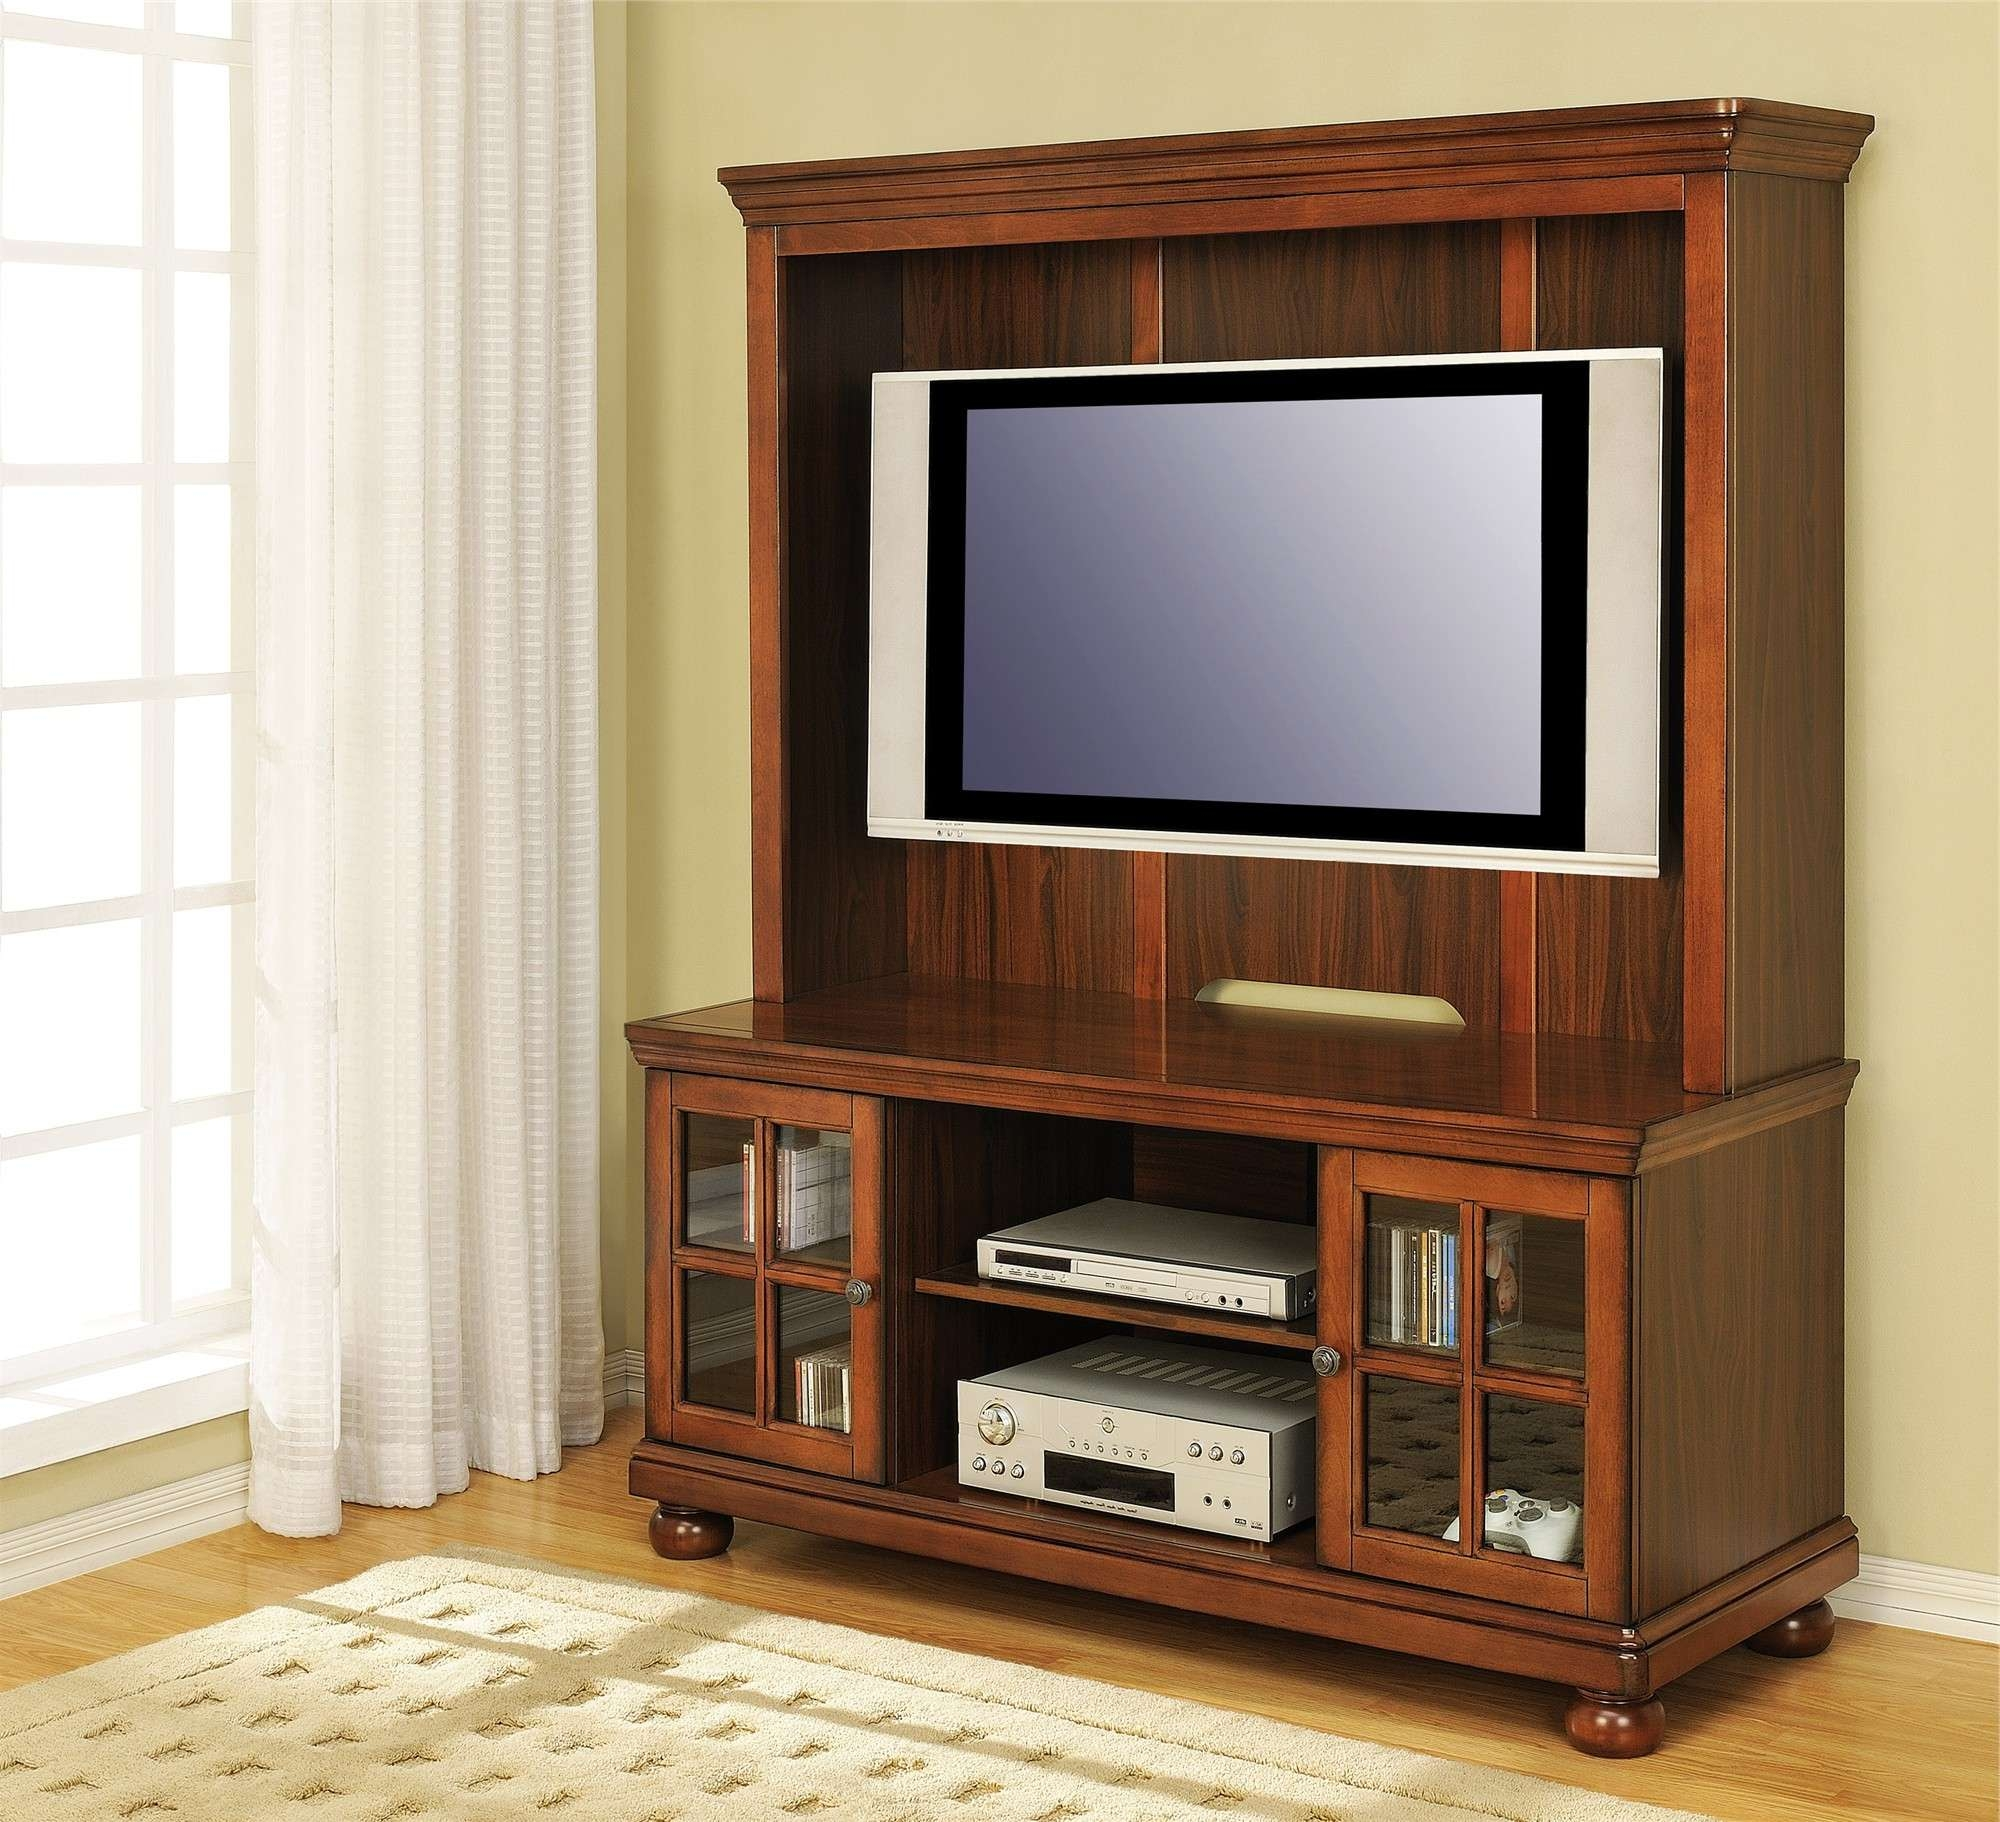 Brown Wooden Cabinet With Glass Door And Rectangle White Flat Throughout Enclosed Tv Cabinets For Flat Screens With Doors (View 4 of 20)